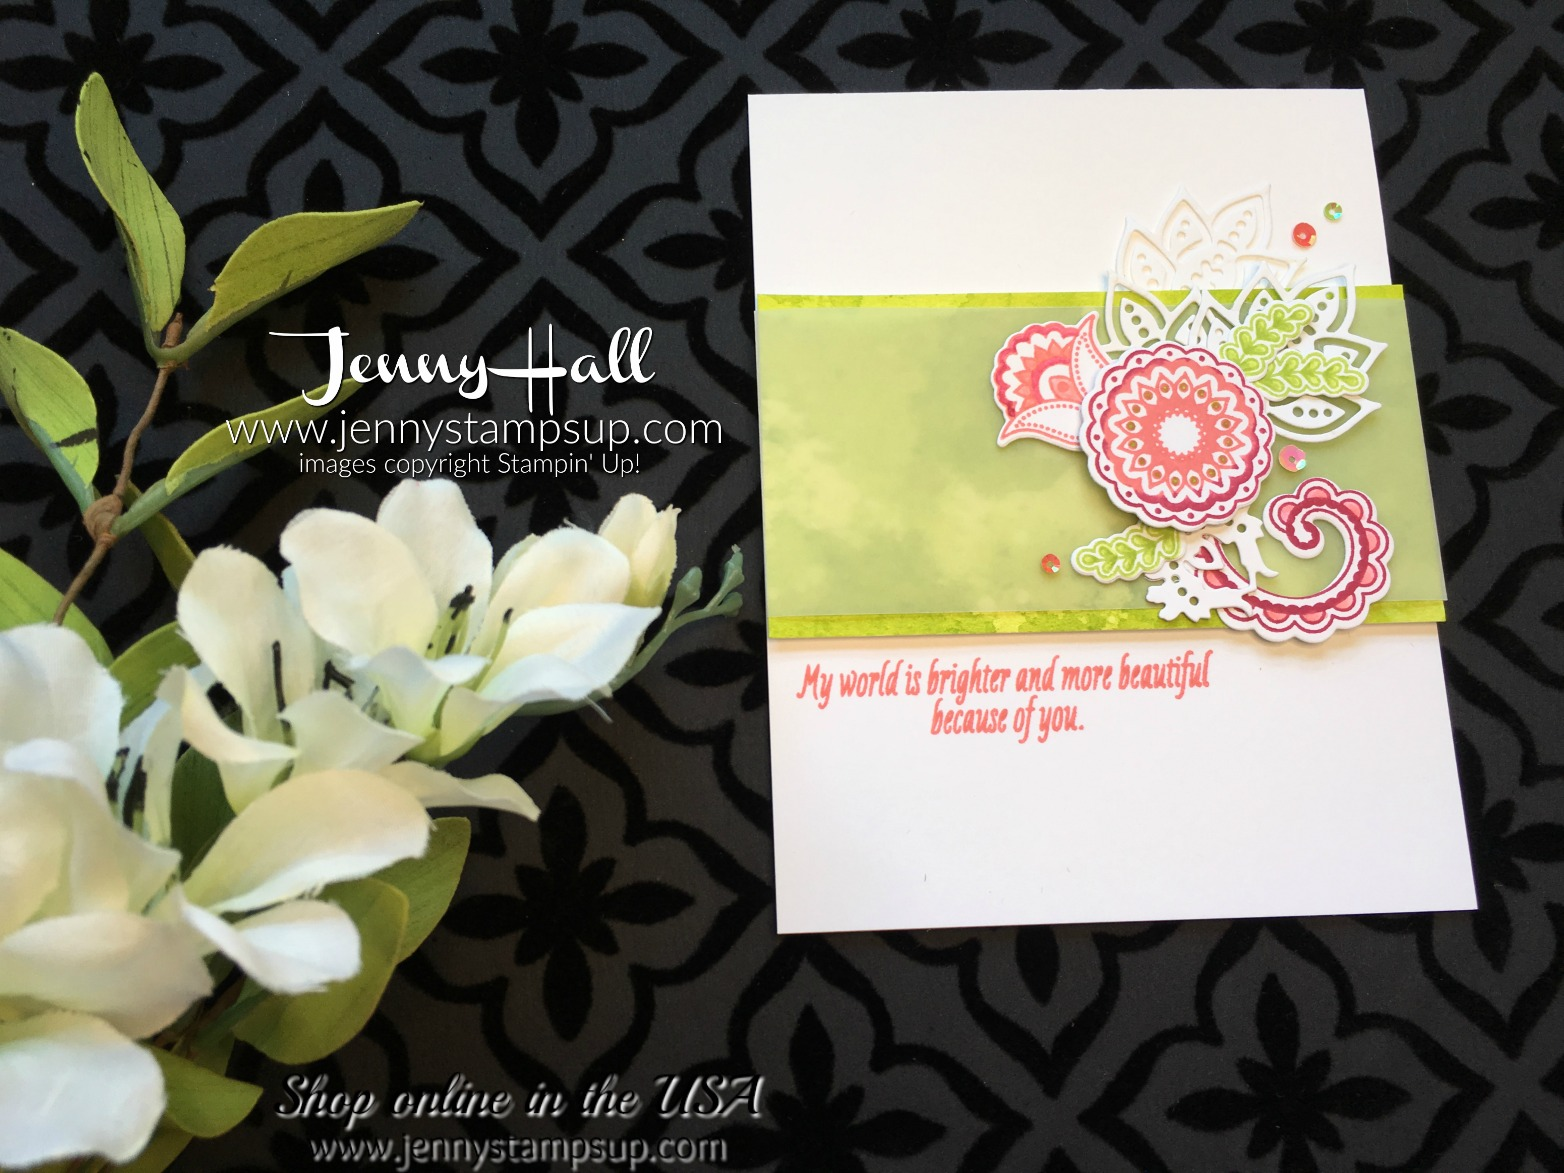 how to create a floral spray on a handmade card by Jenny Hall at www.jennystampsup.com